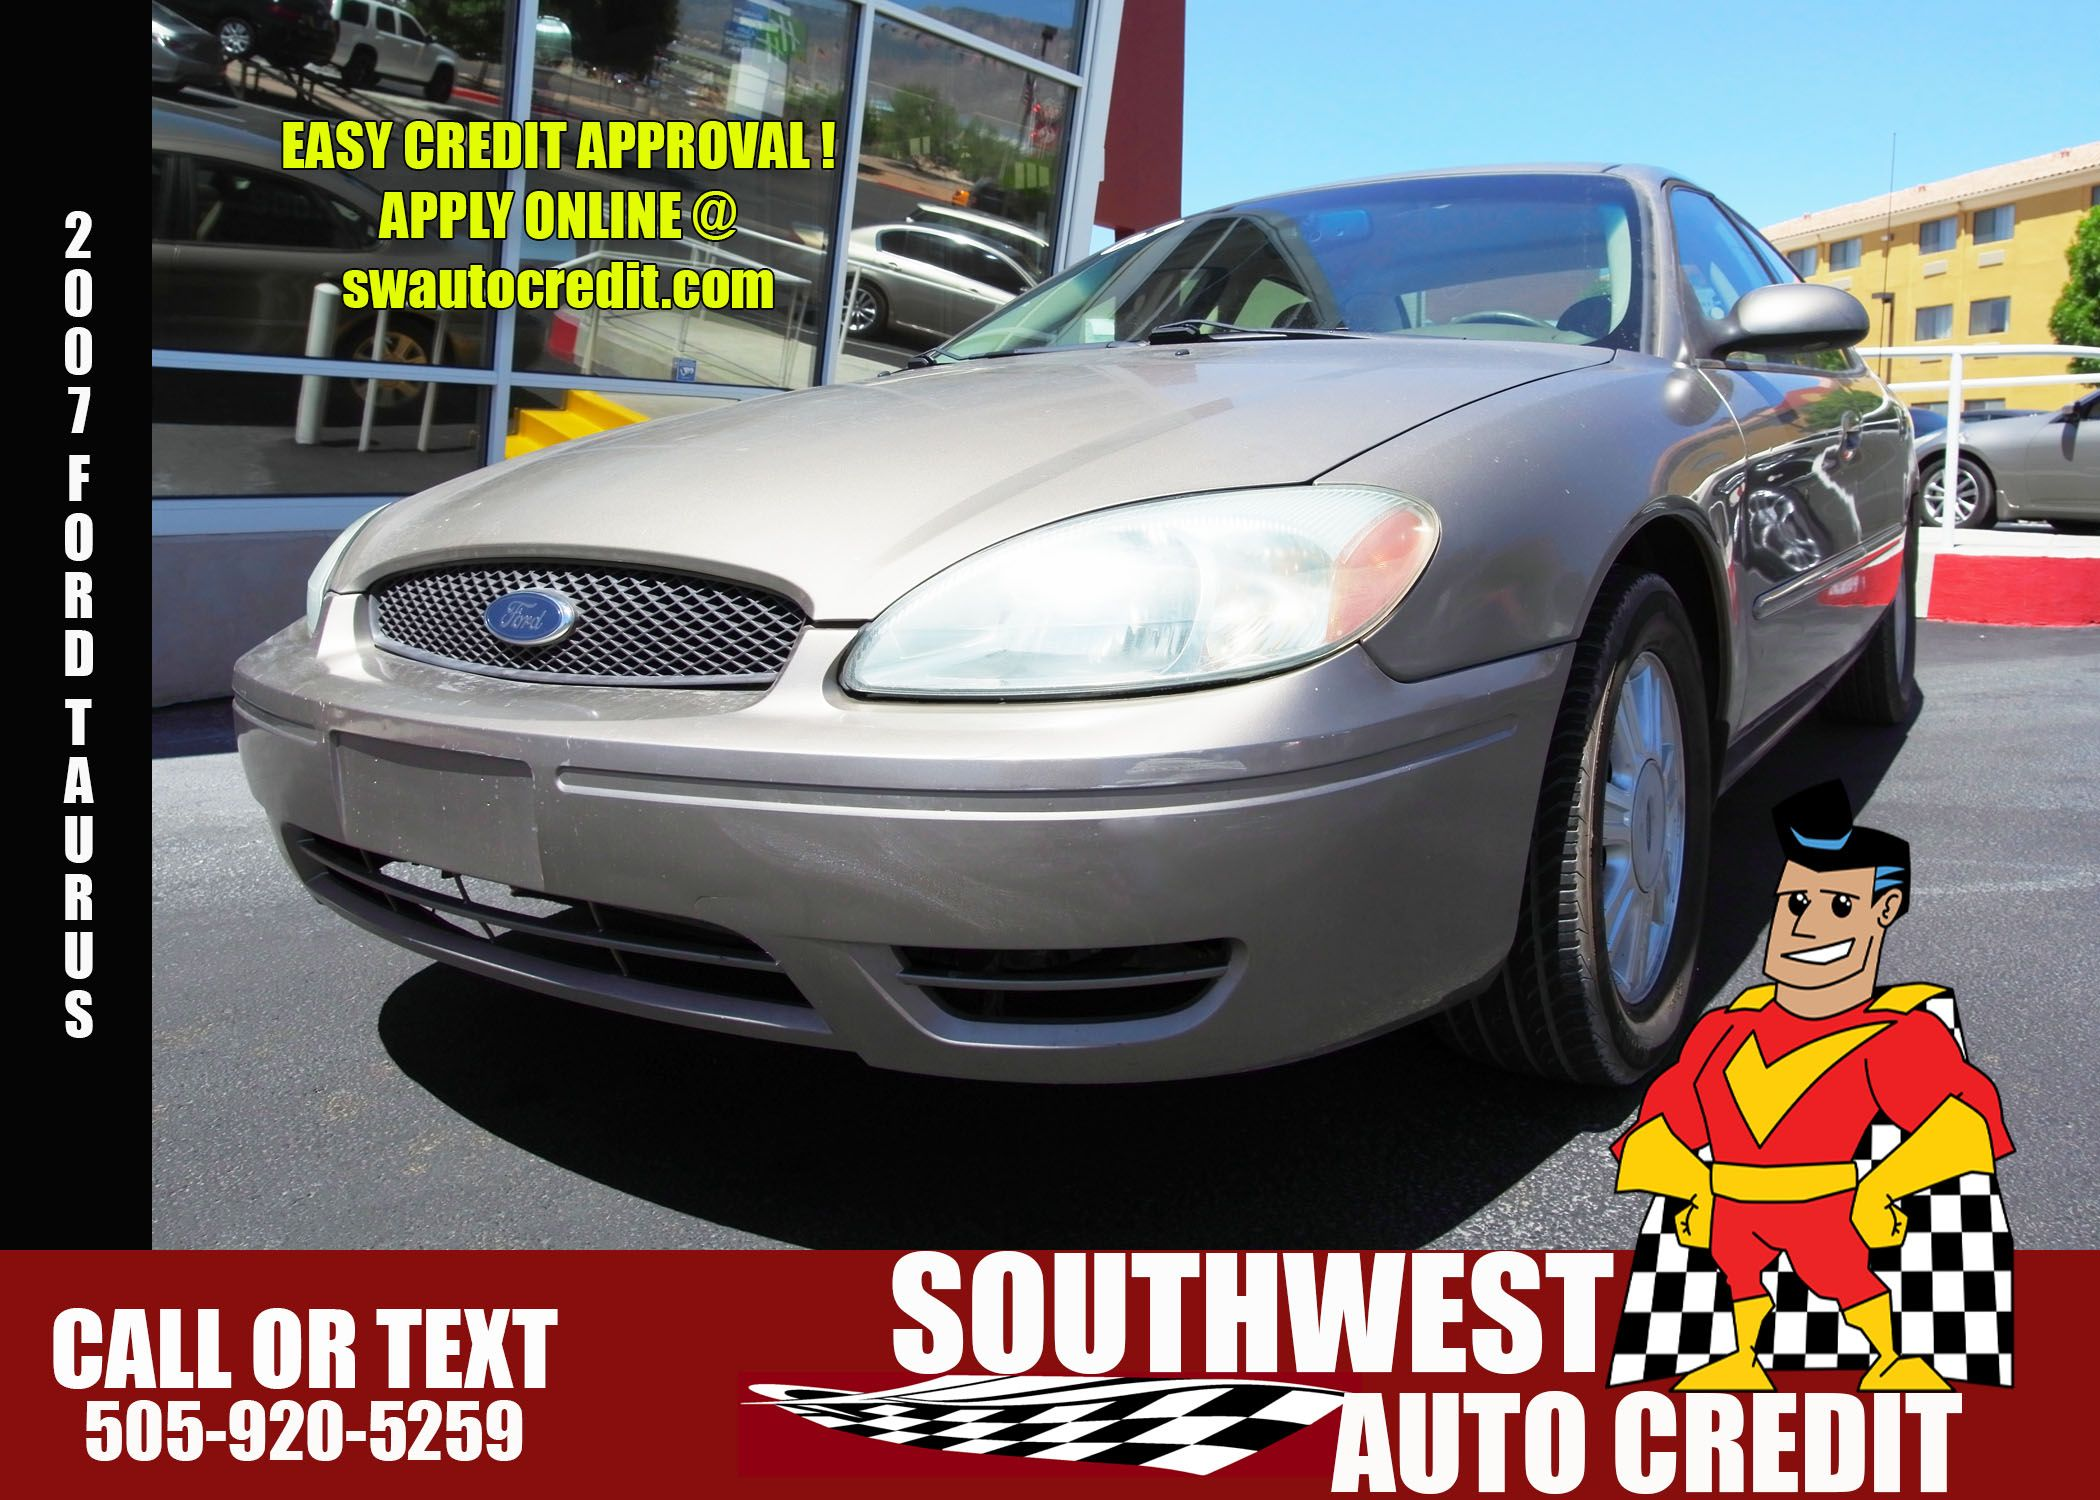 Southwest Auto Credit >> 2007 Ford Taurus 6950 00 Southwest Auto Credit We Offer In